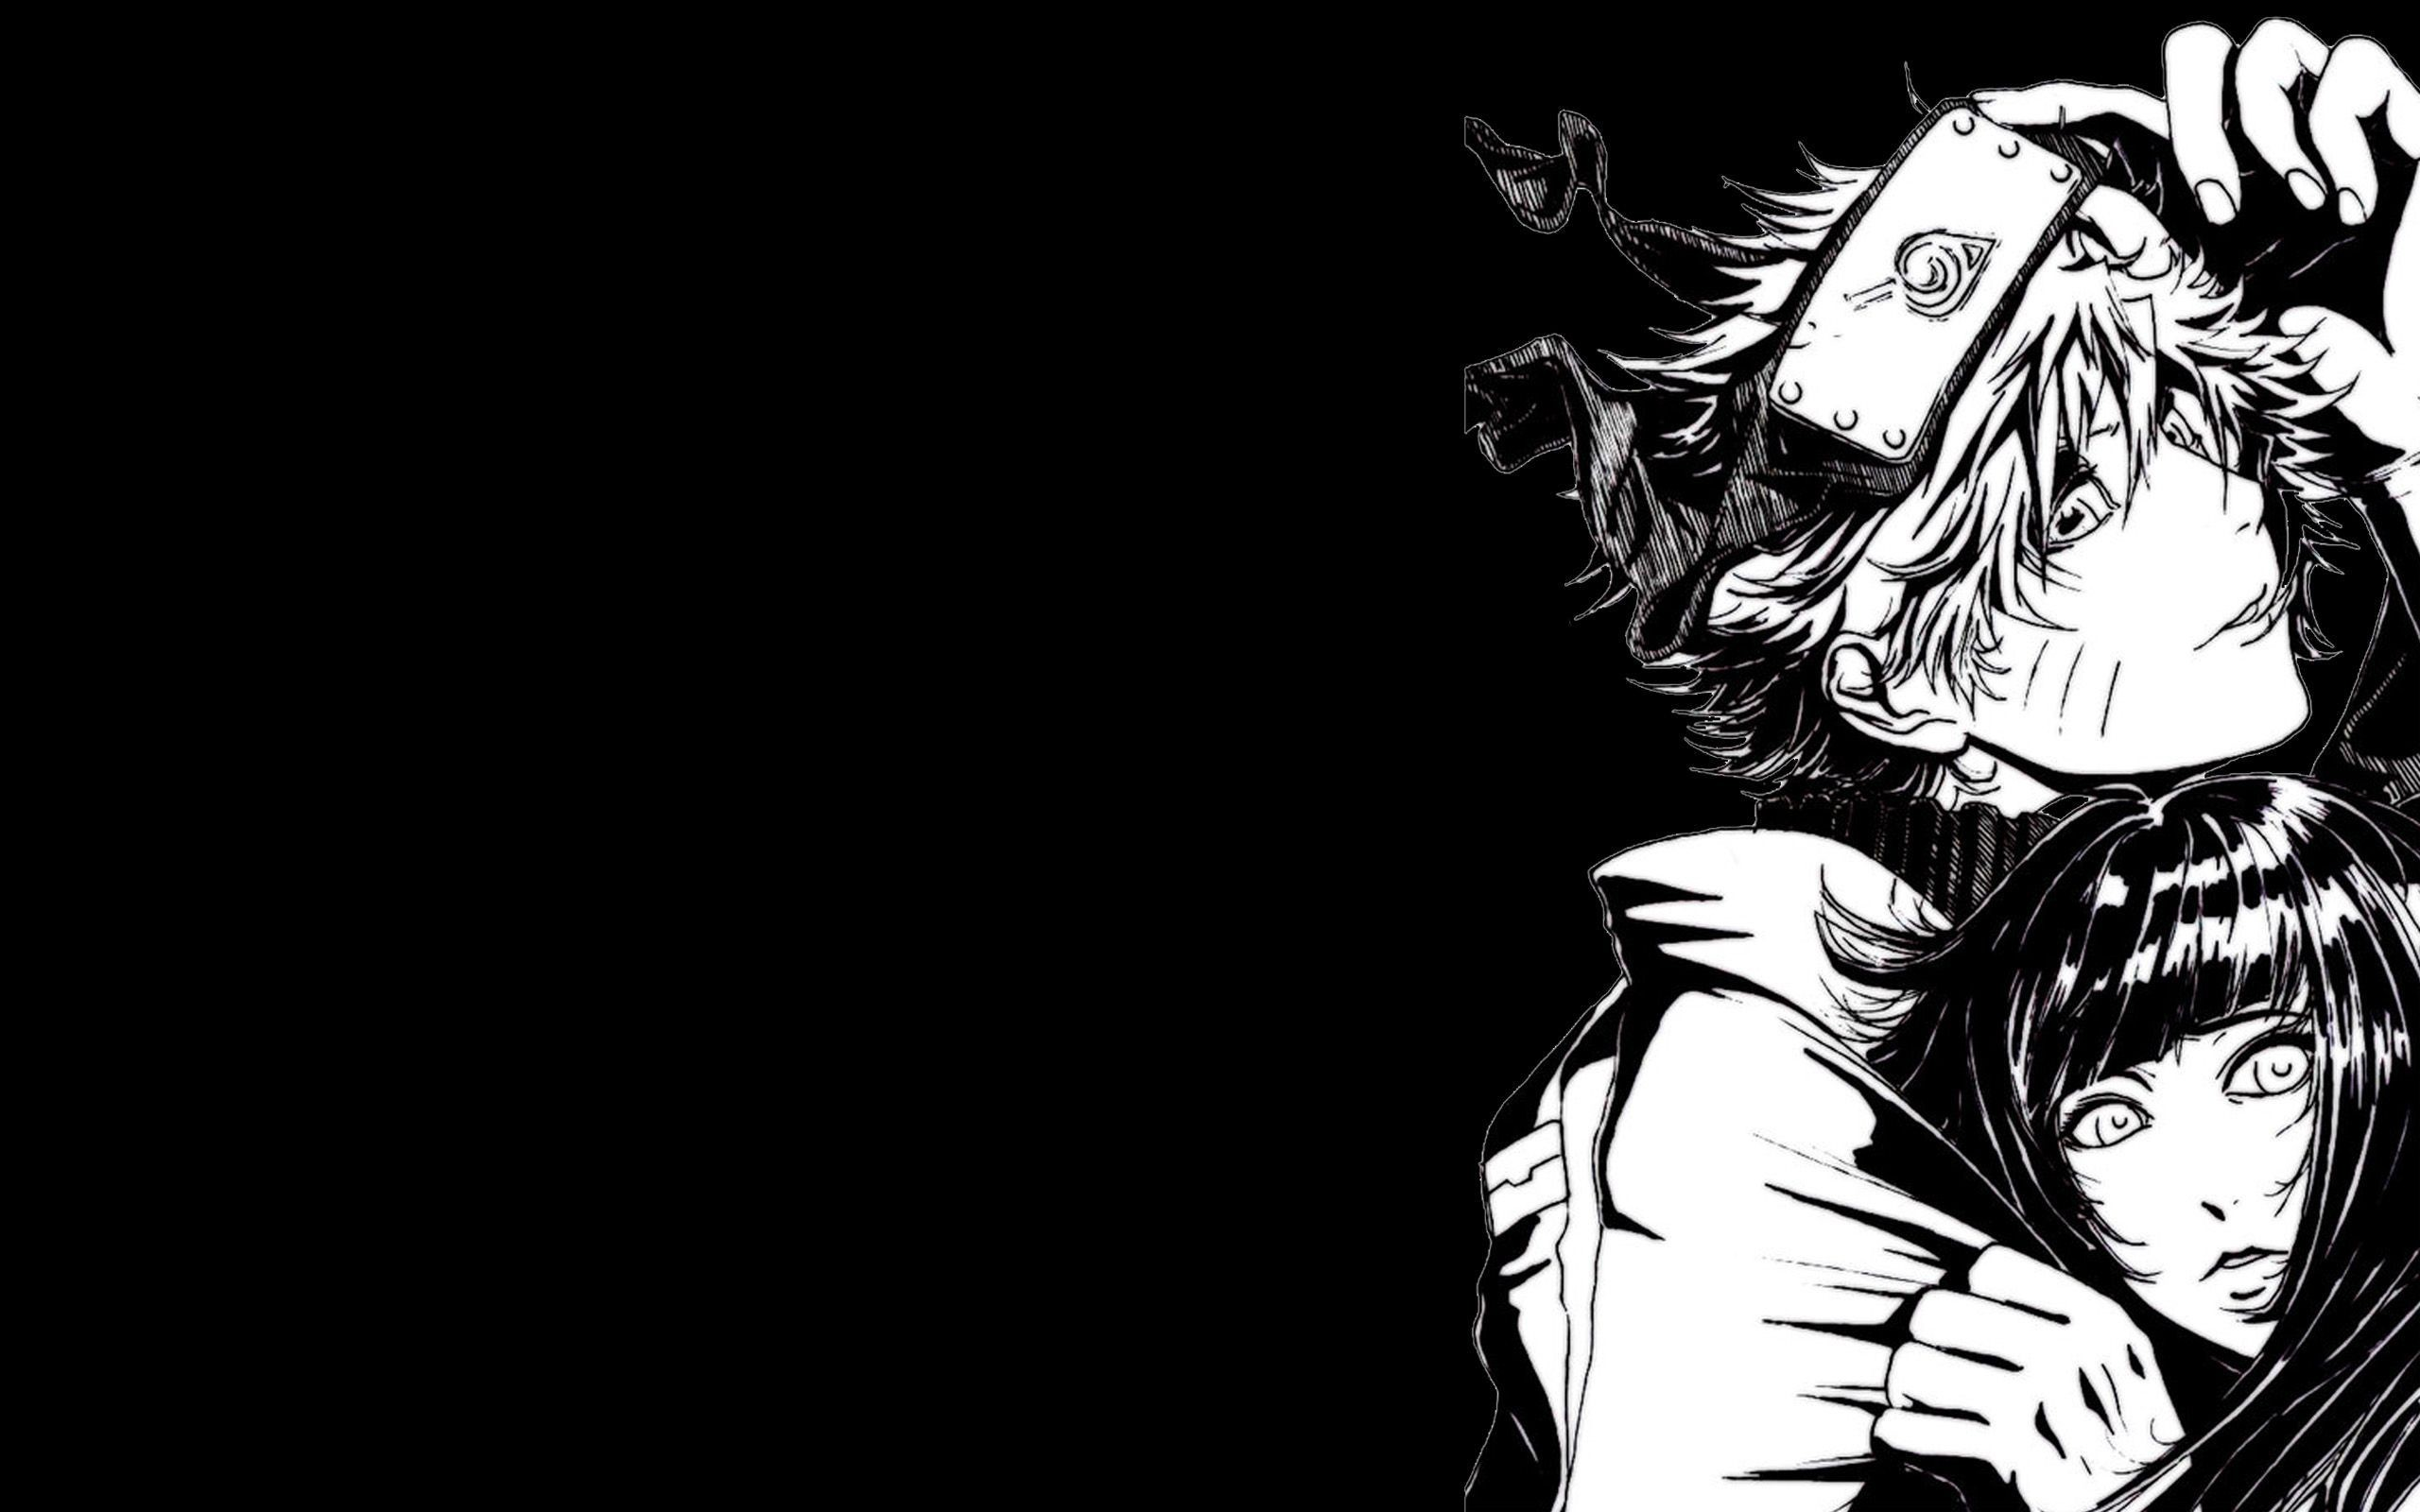 2560x1600 Art black and white naruto shippuden hinata HD Wallpaper